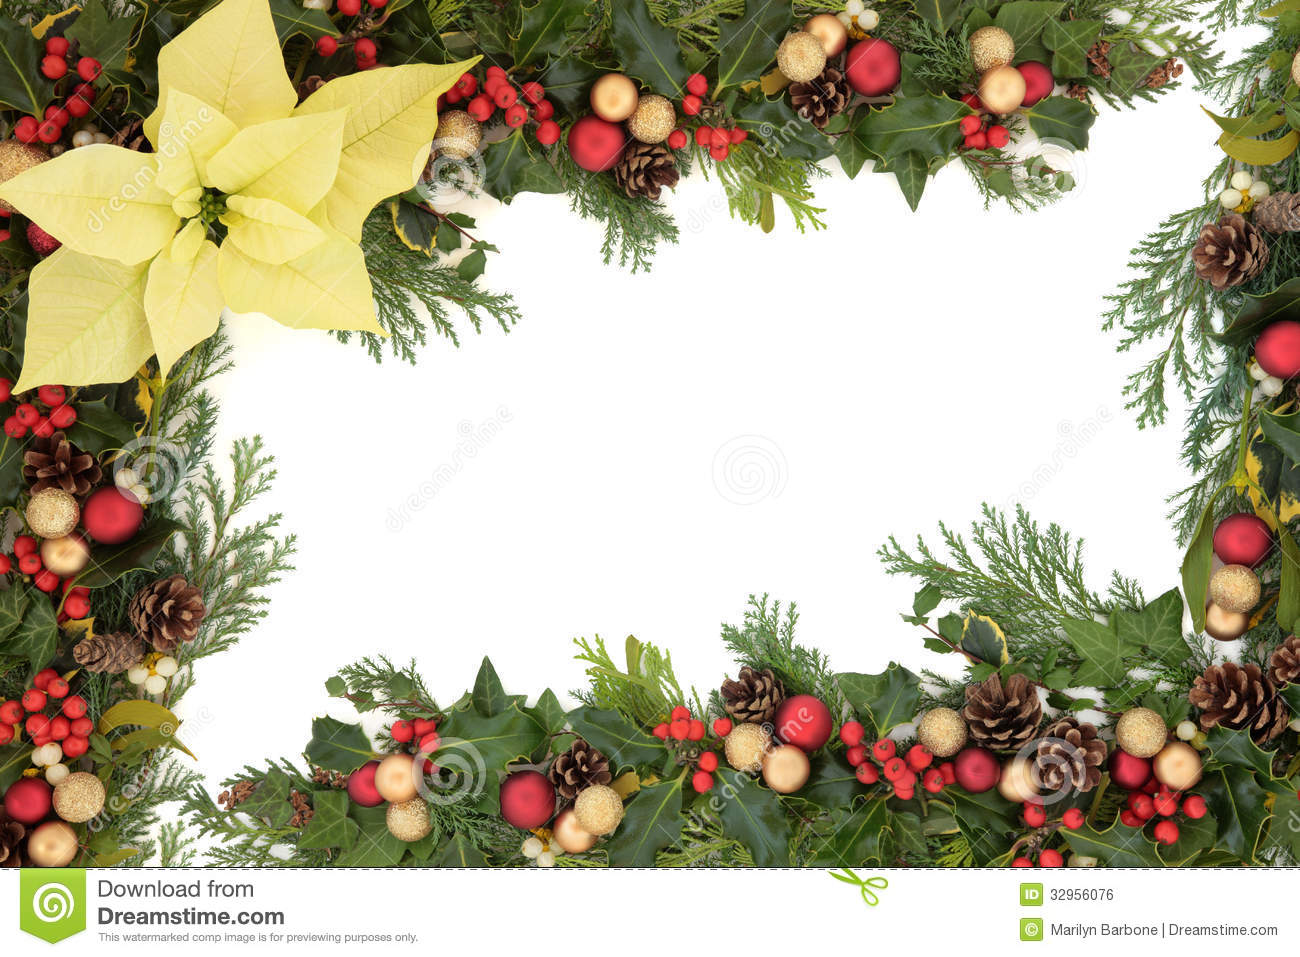 ... border with yellow poinsettia flower, baubles and winter greenery